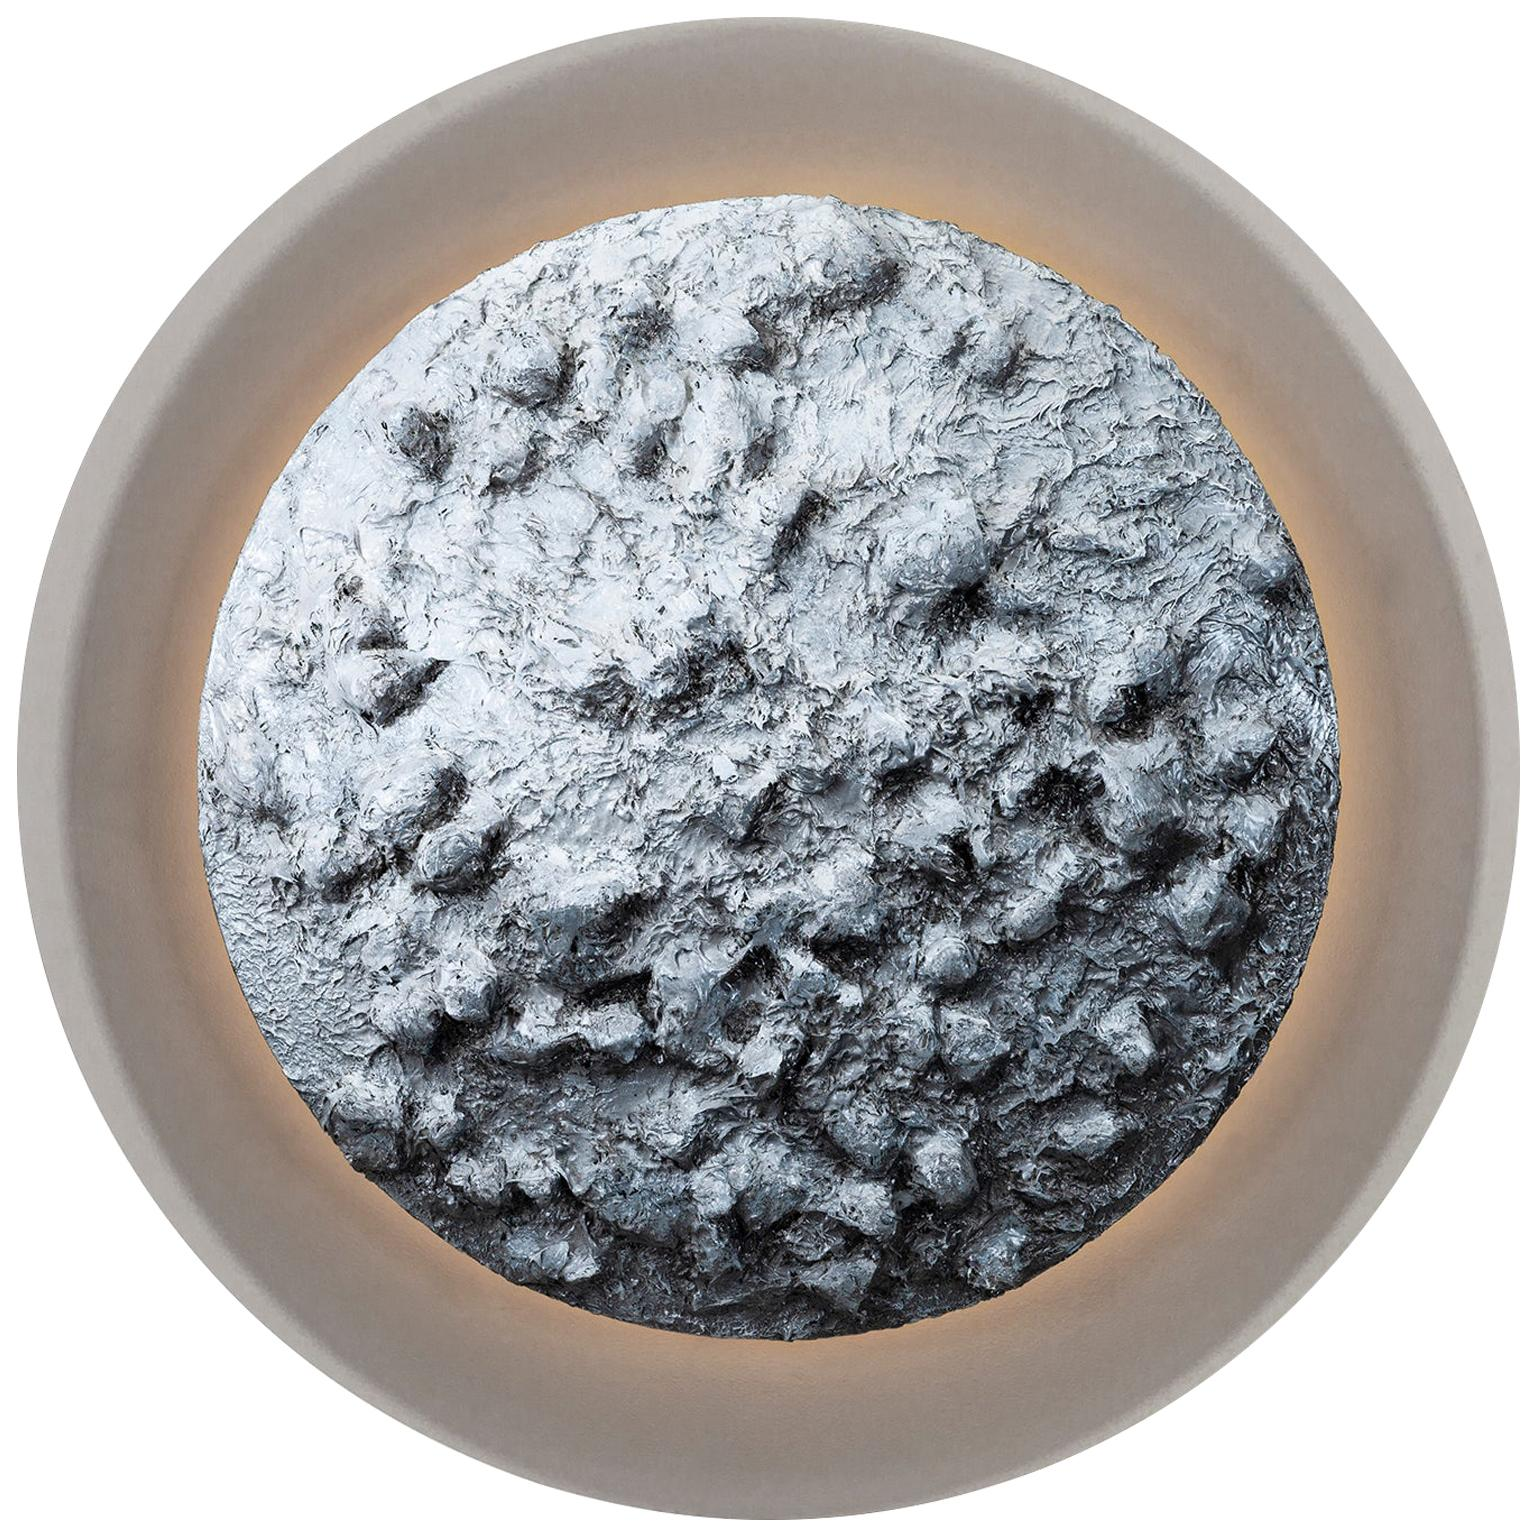 Moon Decorative Wall Art Piece Grey Texturized Resin Grey Acrylic Backlight